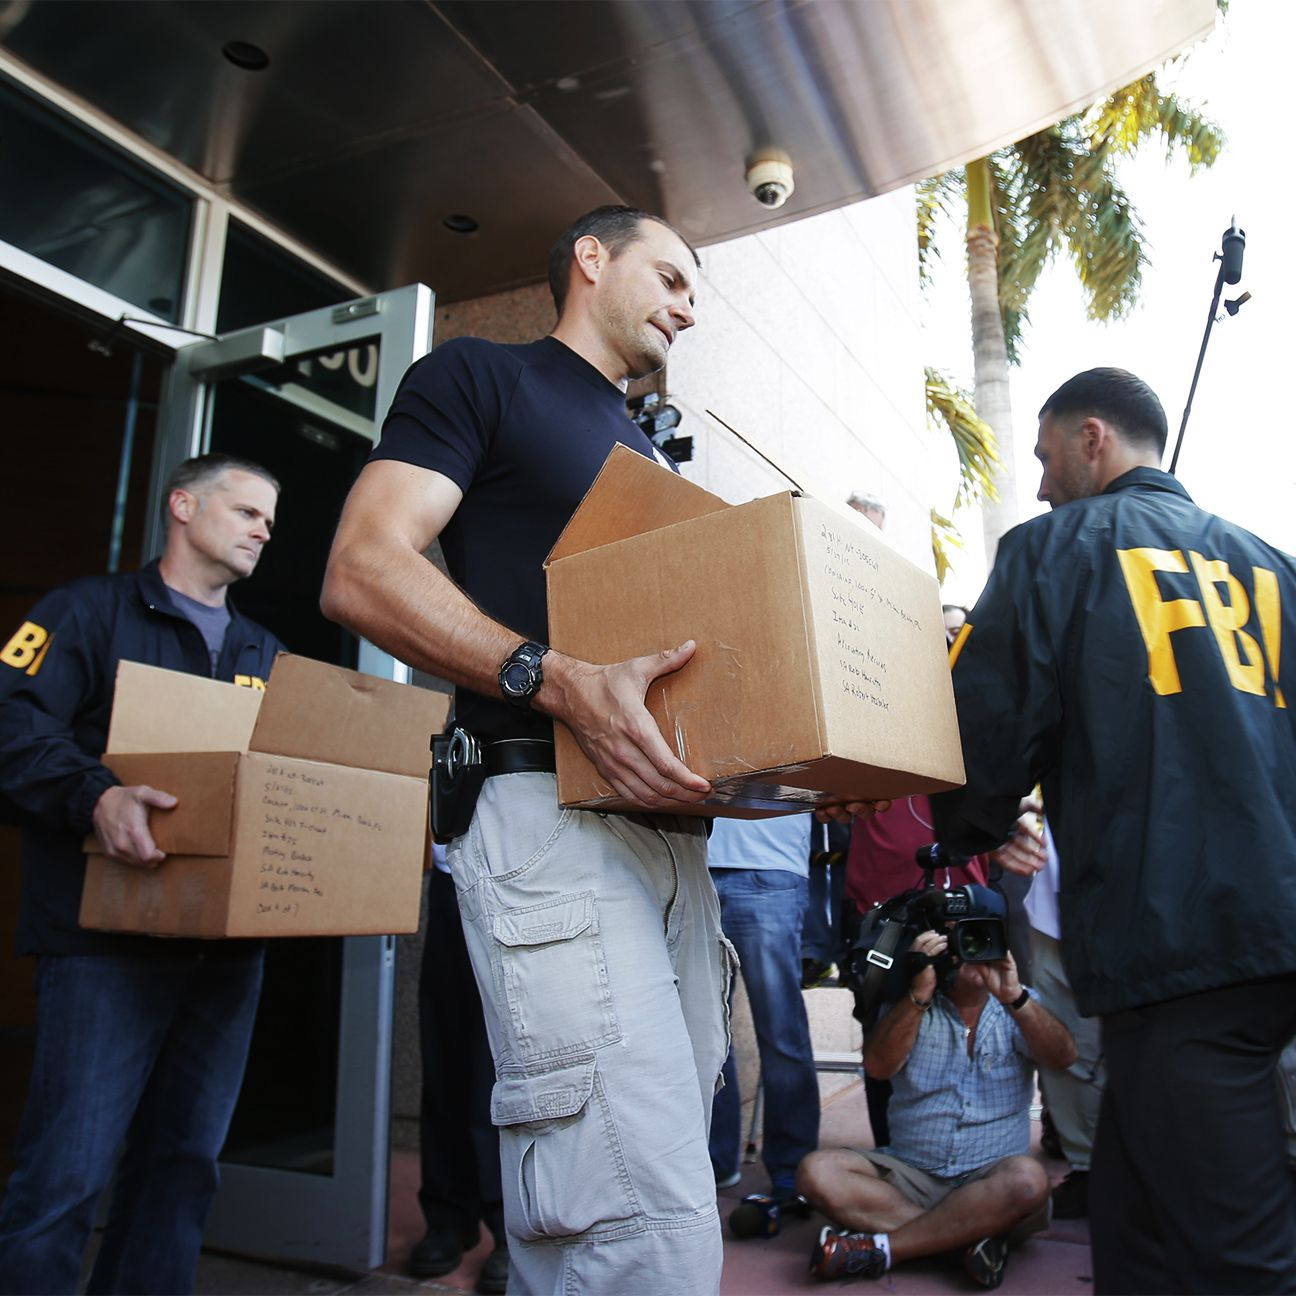 CONCACAF are seeking to become a transparent organization in light of last May's FBI raid on their headquarters in Miami.